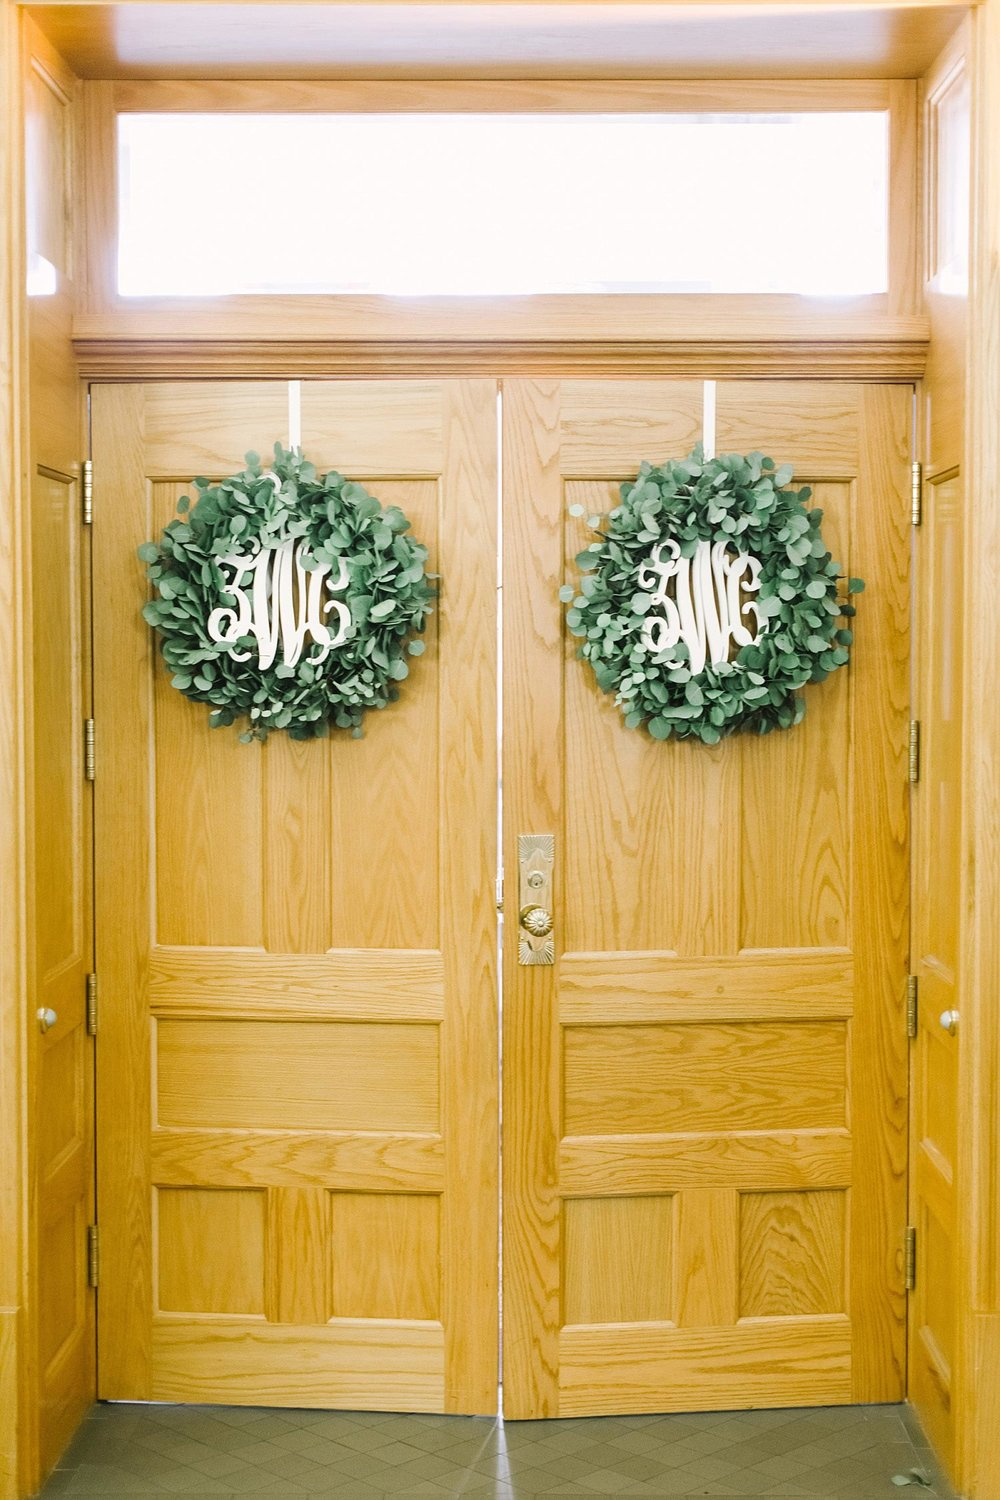 Old Red Museum wreaths on the ceremony doors with monograms in center